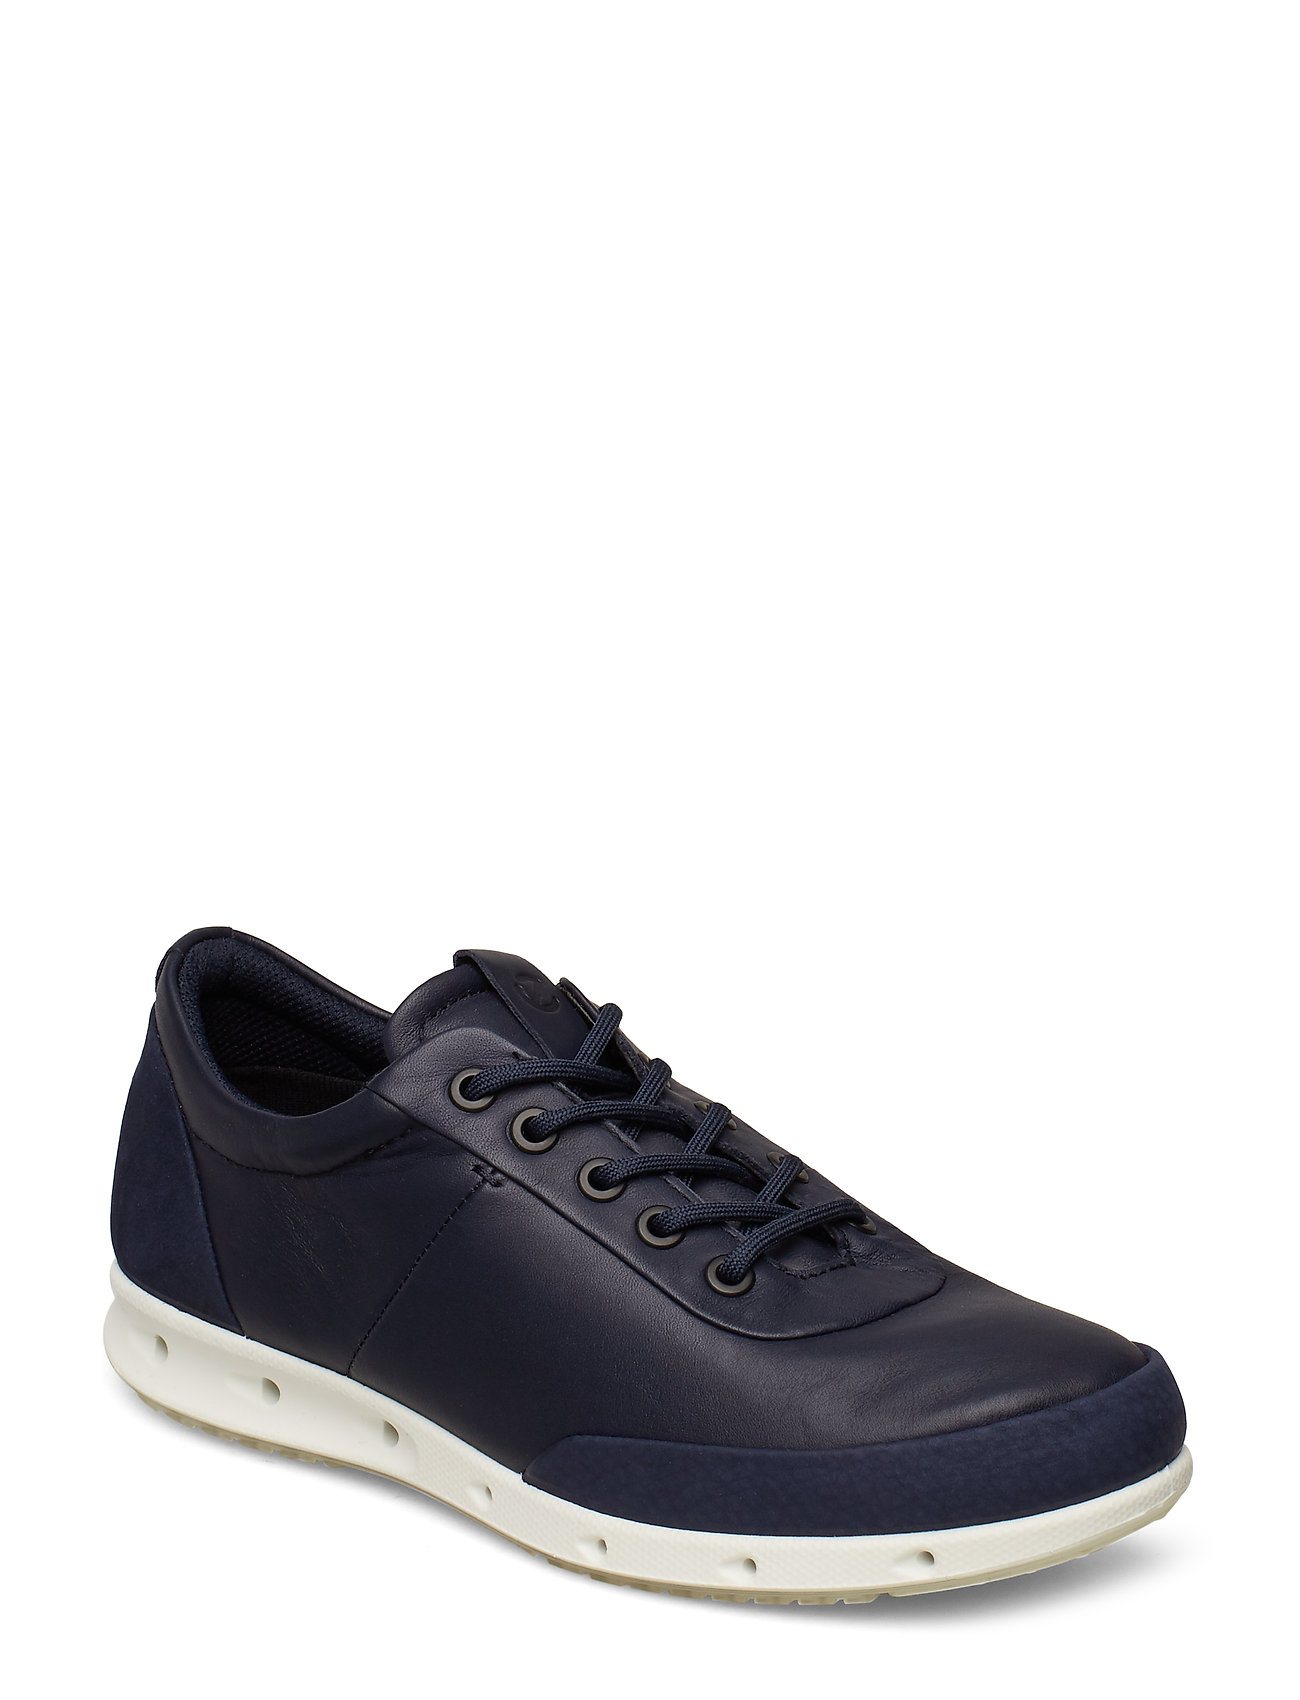 Image of Cool Low-top Sneakers Blå ECCO (3194551773)